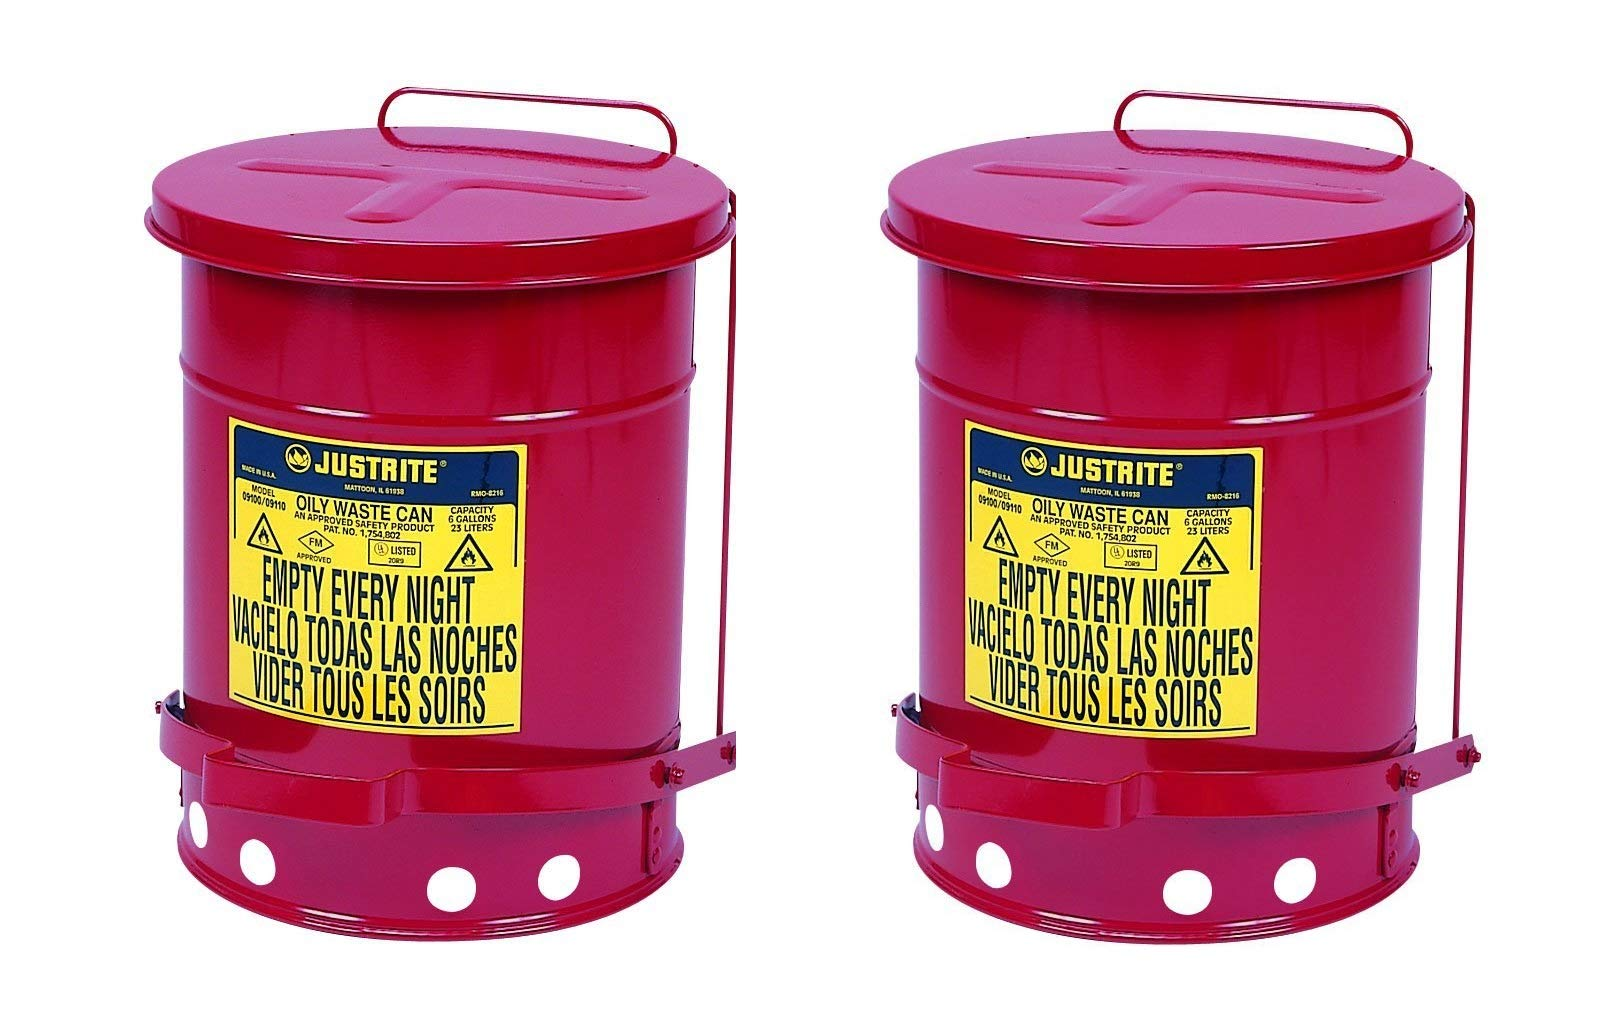 Justrite J09100 09100; Galvanized-steel; Safety cans Oily waste; Red; Foot Operated cover; Raised, ventilated Bottom; Reinforced ribs; Self-closing (Pack of 2)